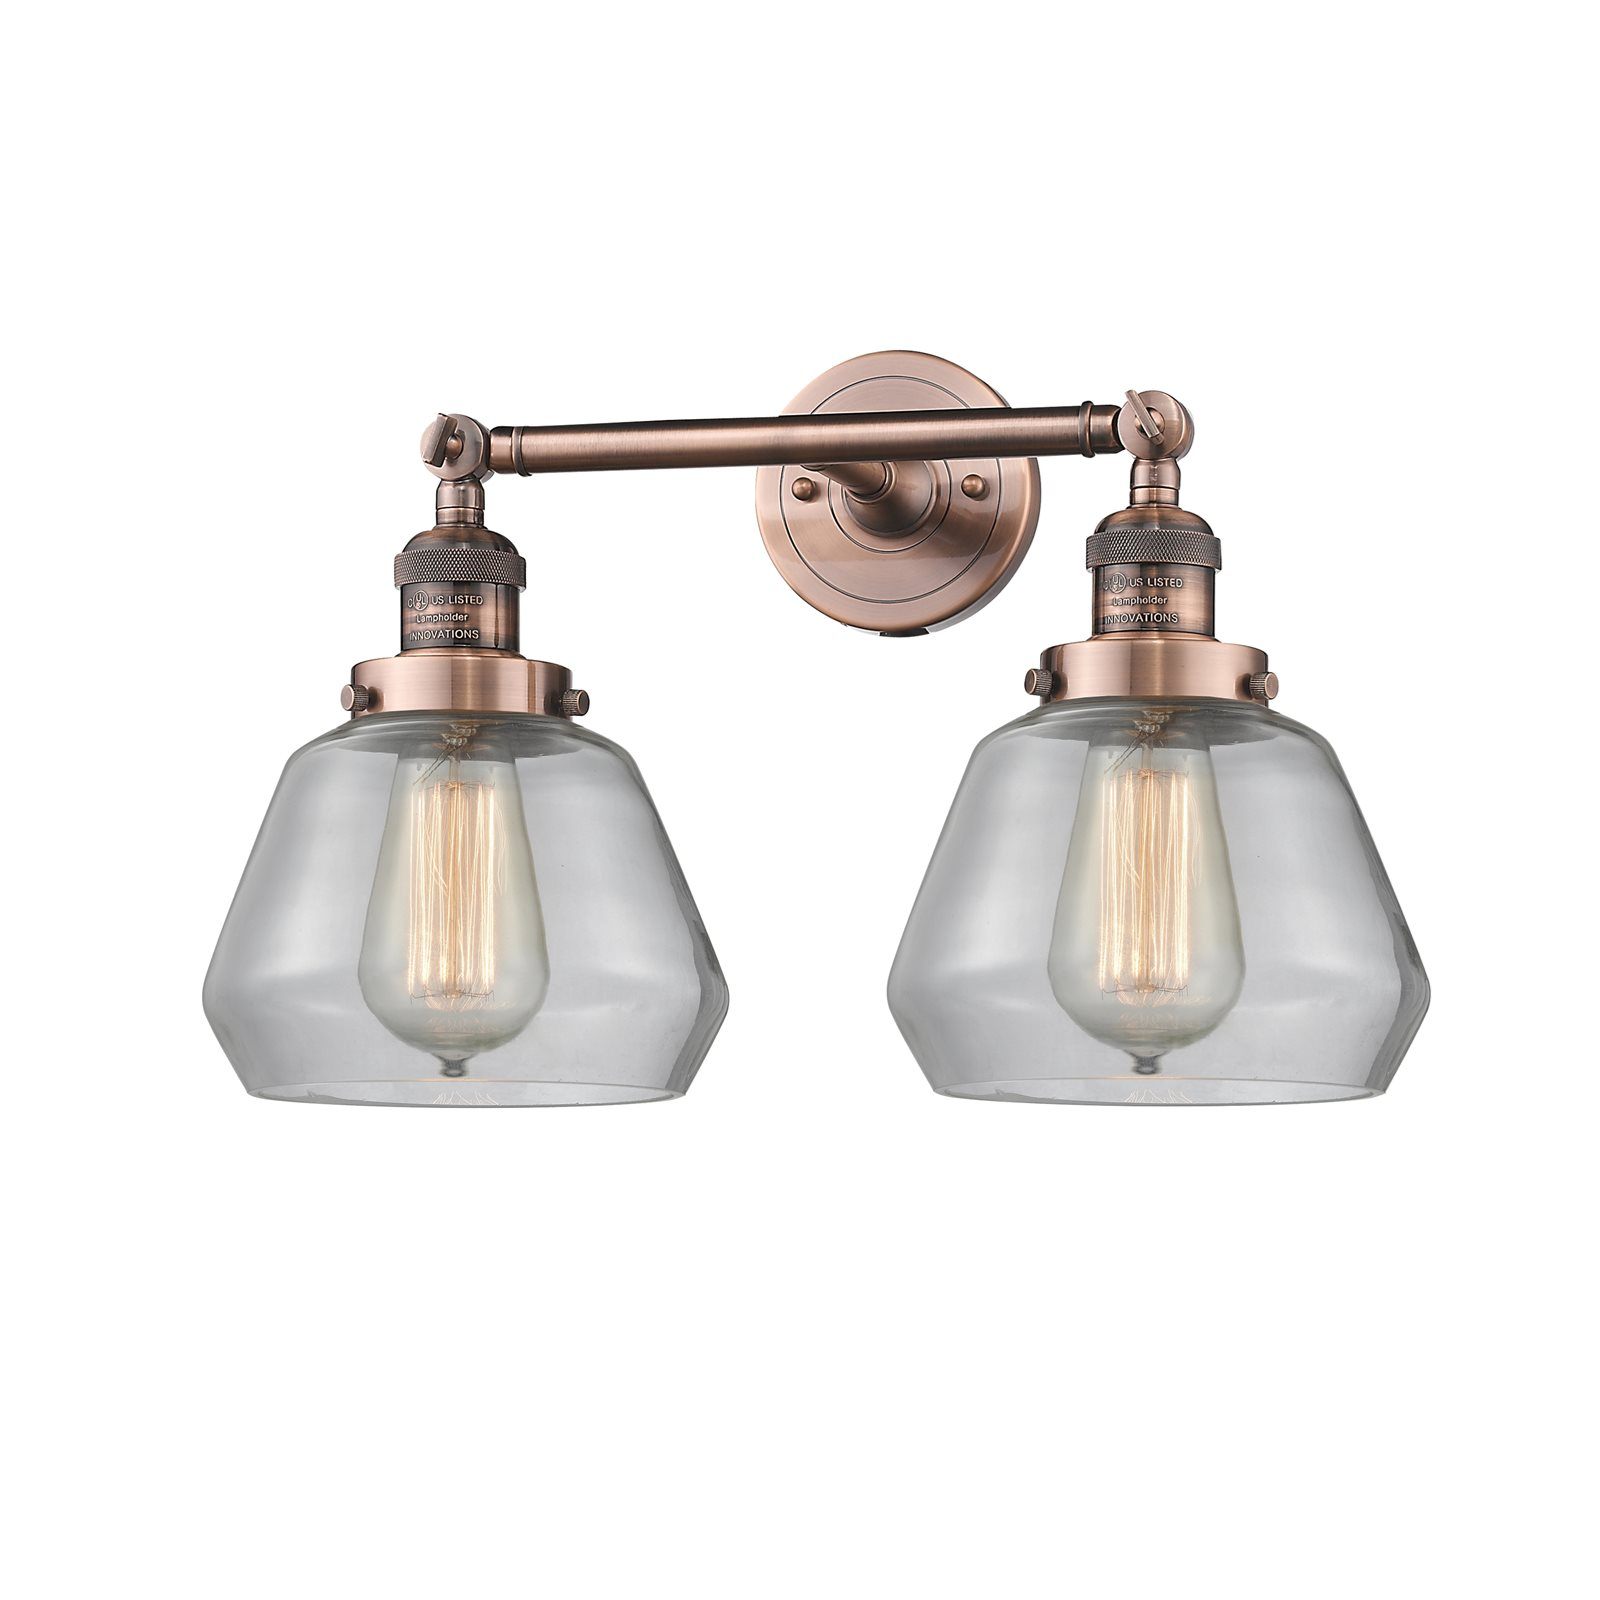 """Innovations 2-LT LED Fulton 16.5"""" Bathroom Fixture Antique Copper 208-AC-G172-LED by"""